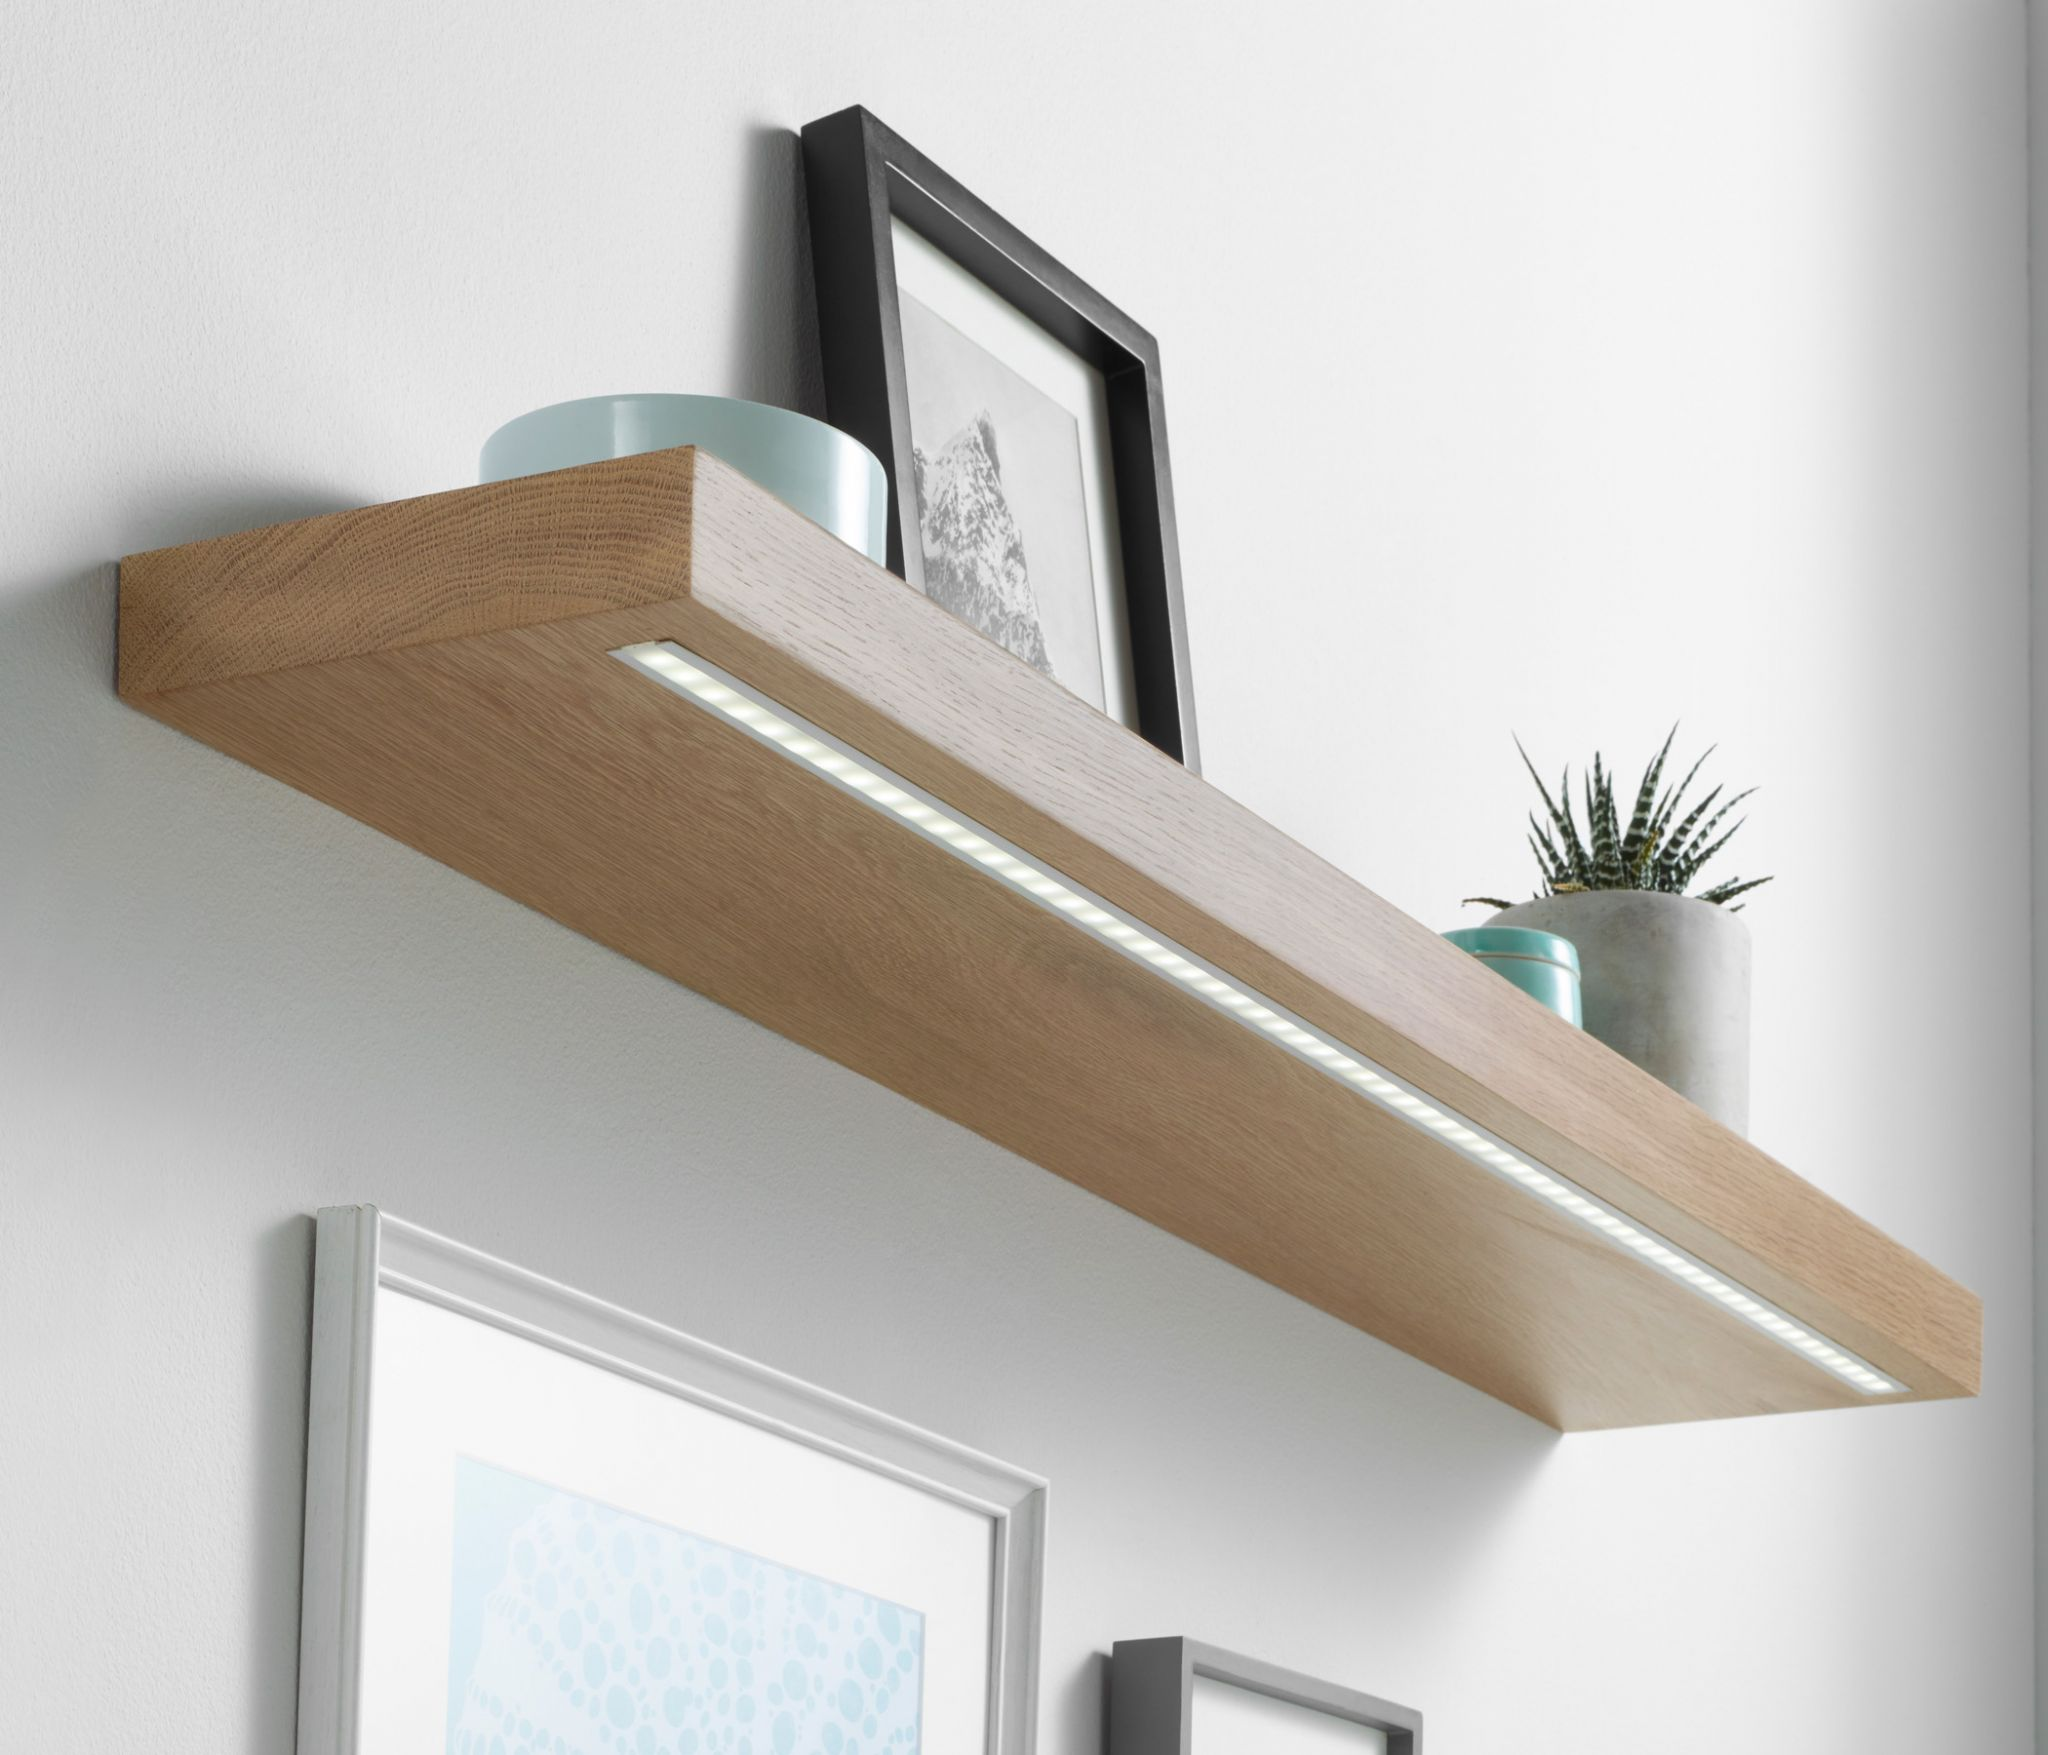 Solid White Oak Floating Shelf 40x220mm With Warm White